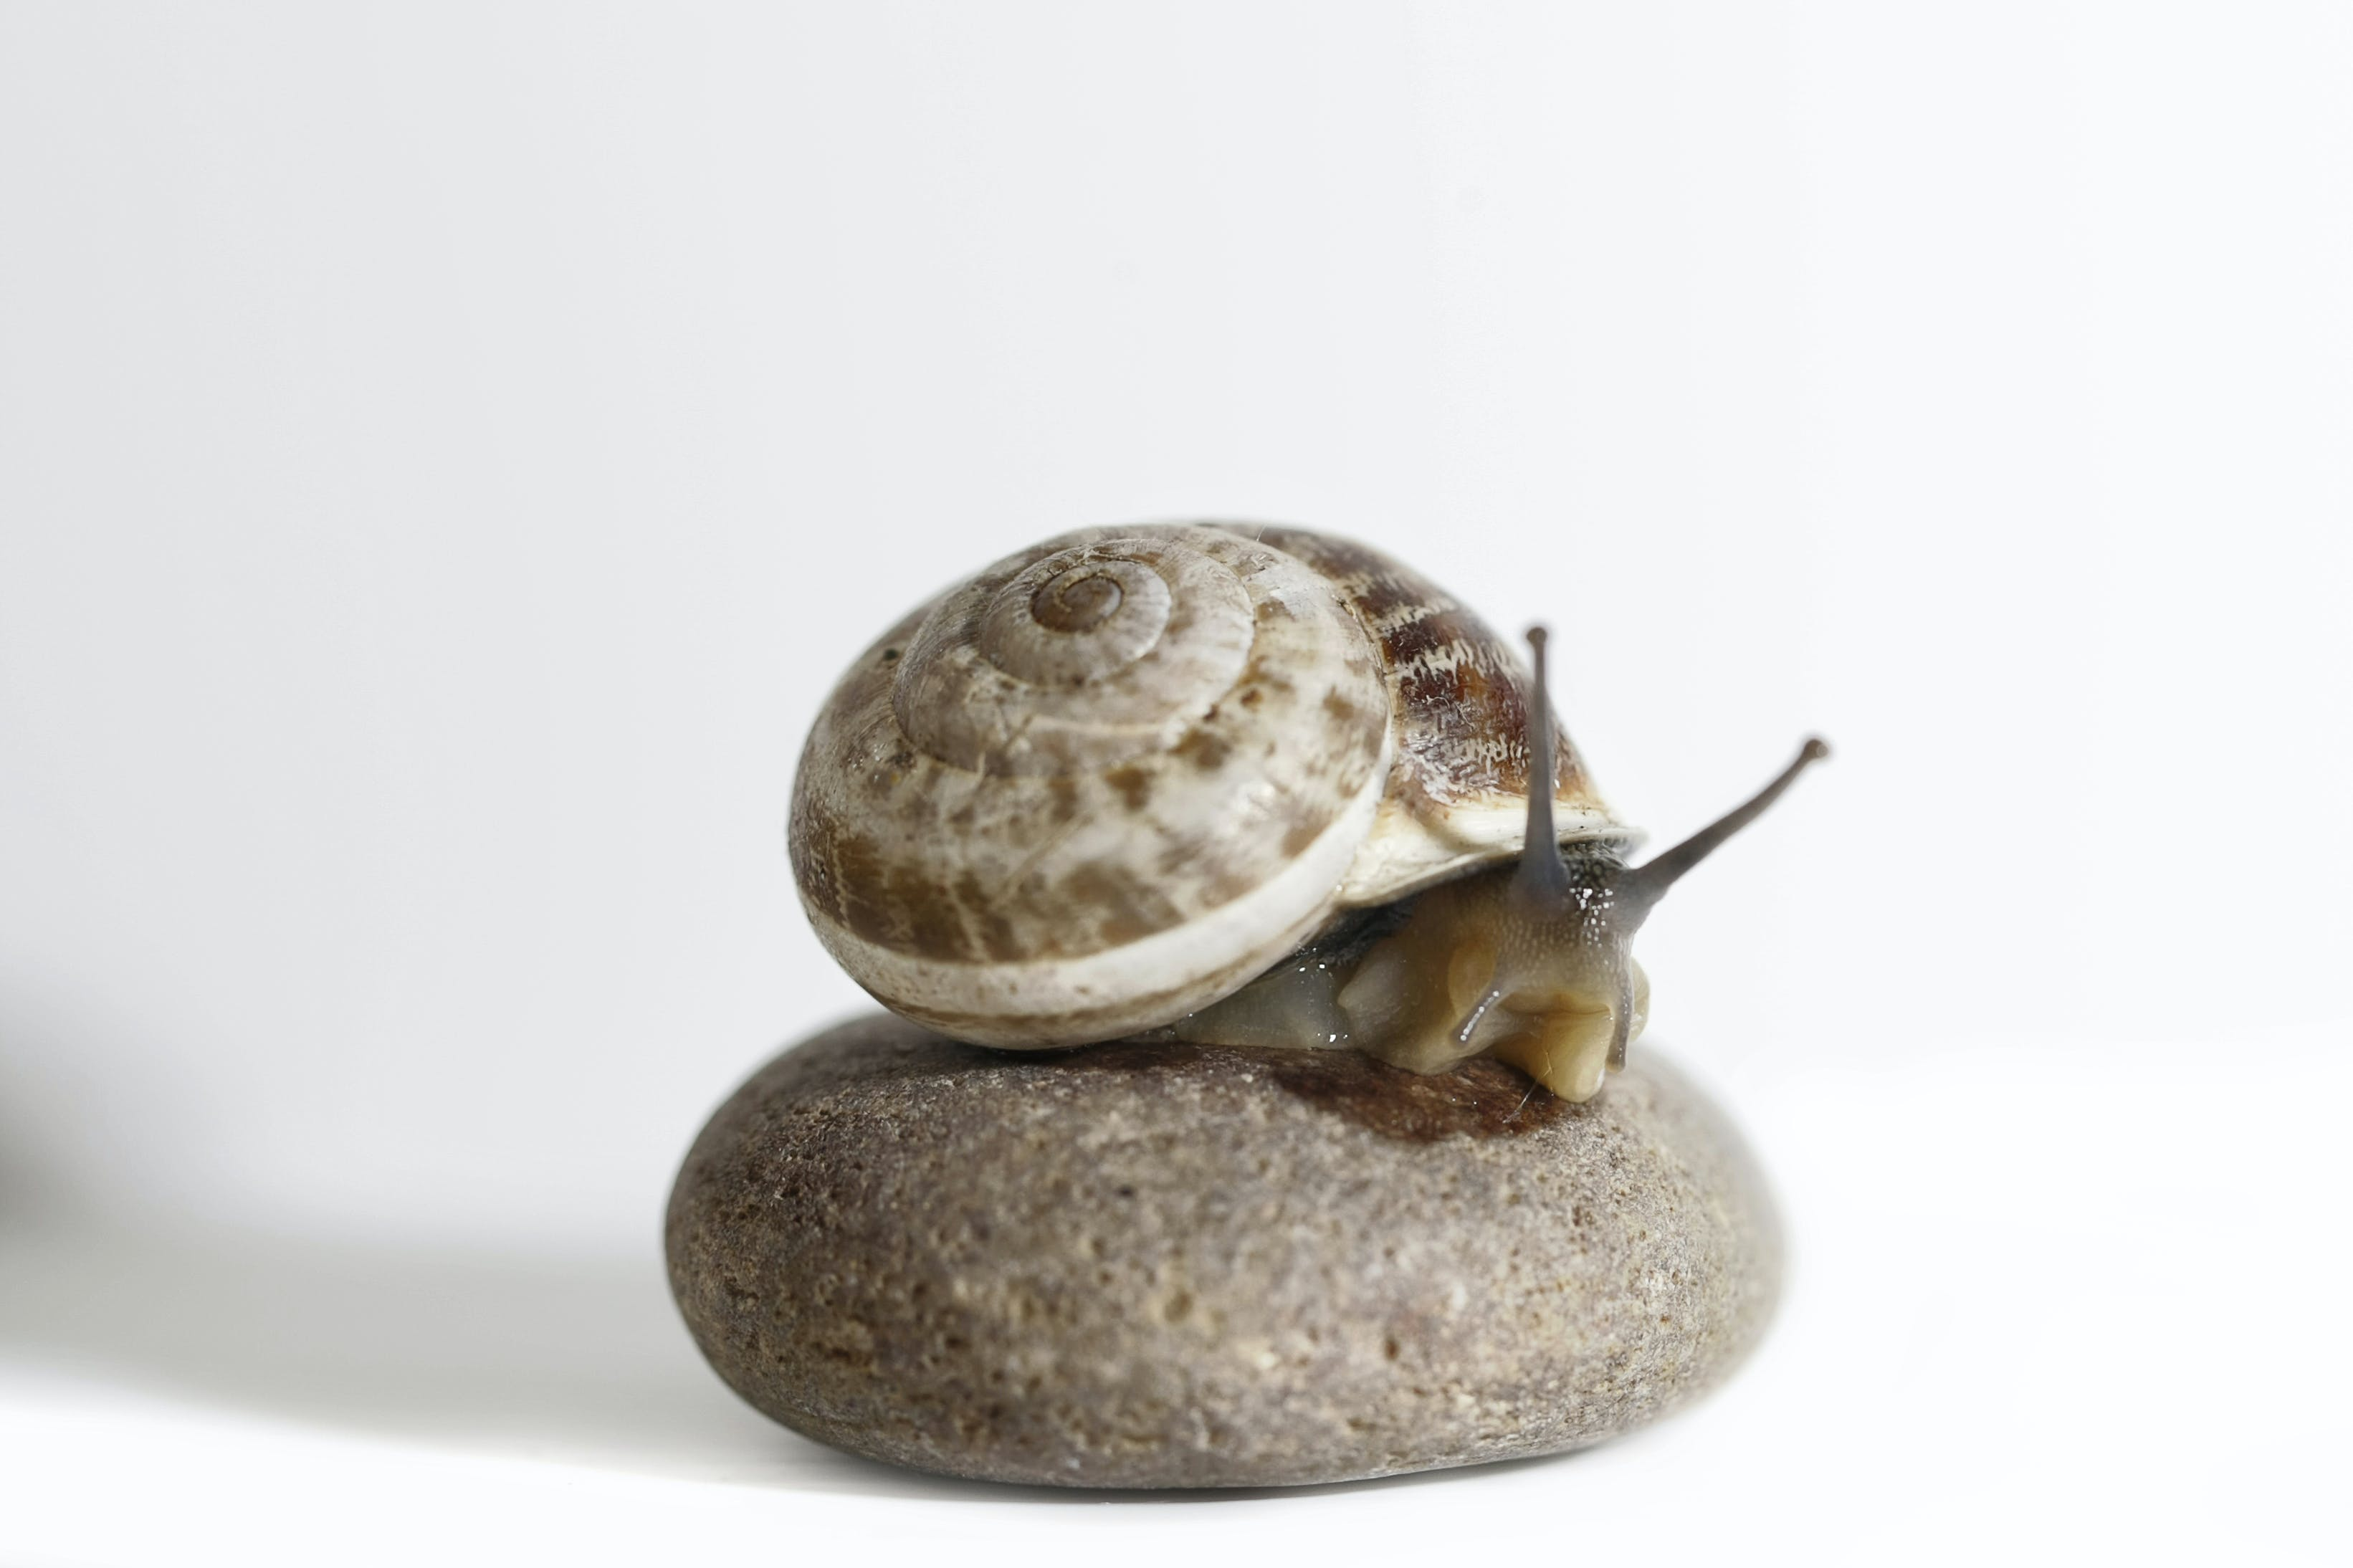 Brow Snail on Stone